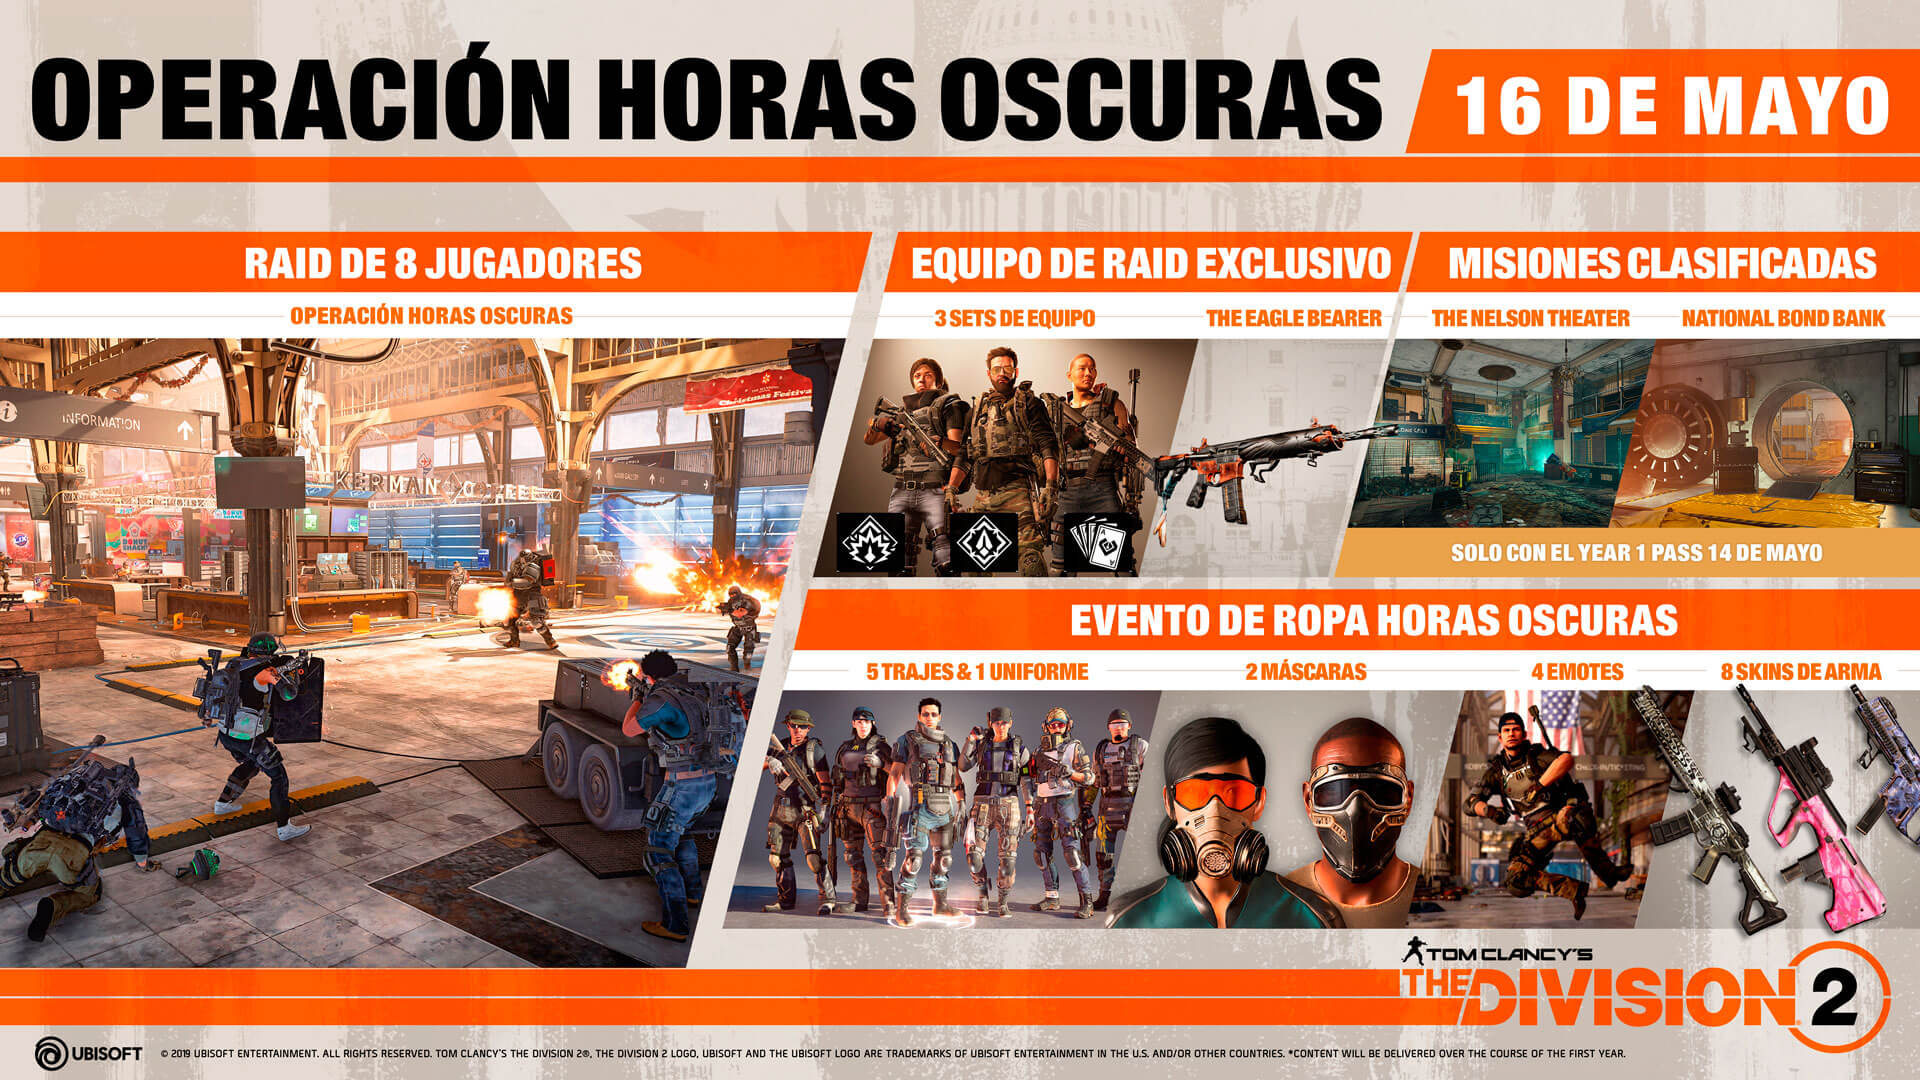 Tom Clancy's The Division 2 Operación Horas Oscuras 2